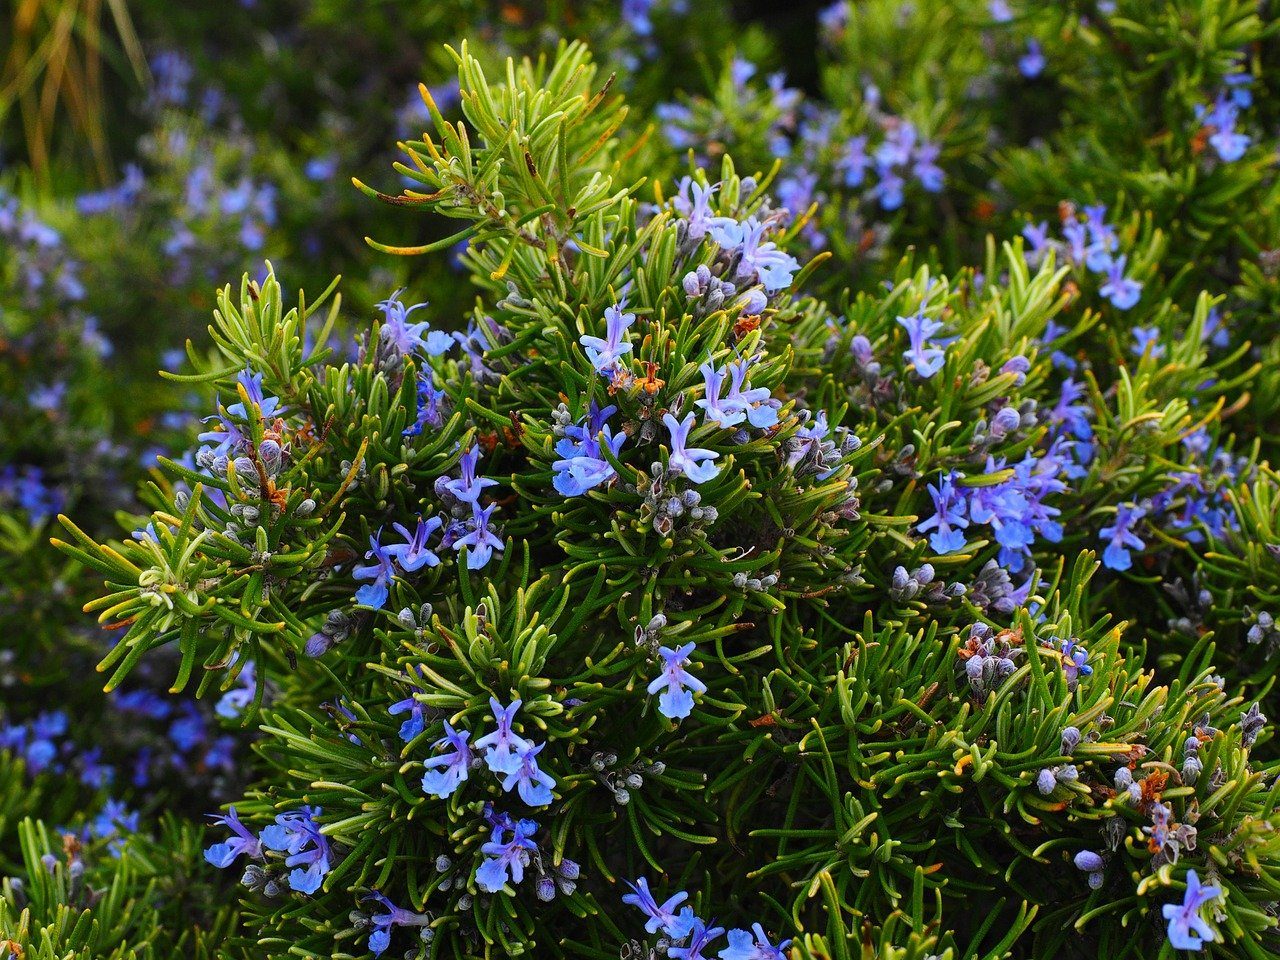 rosemary - perennial culinary herb